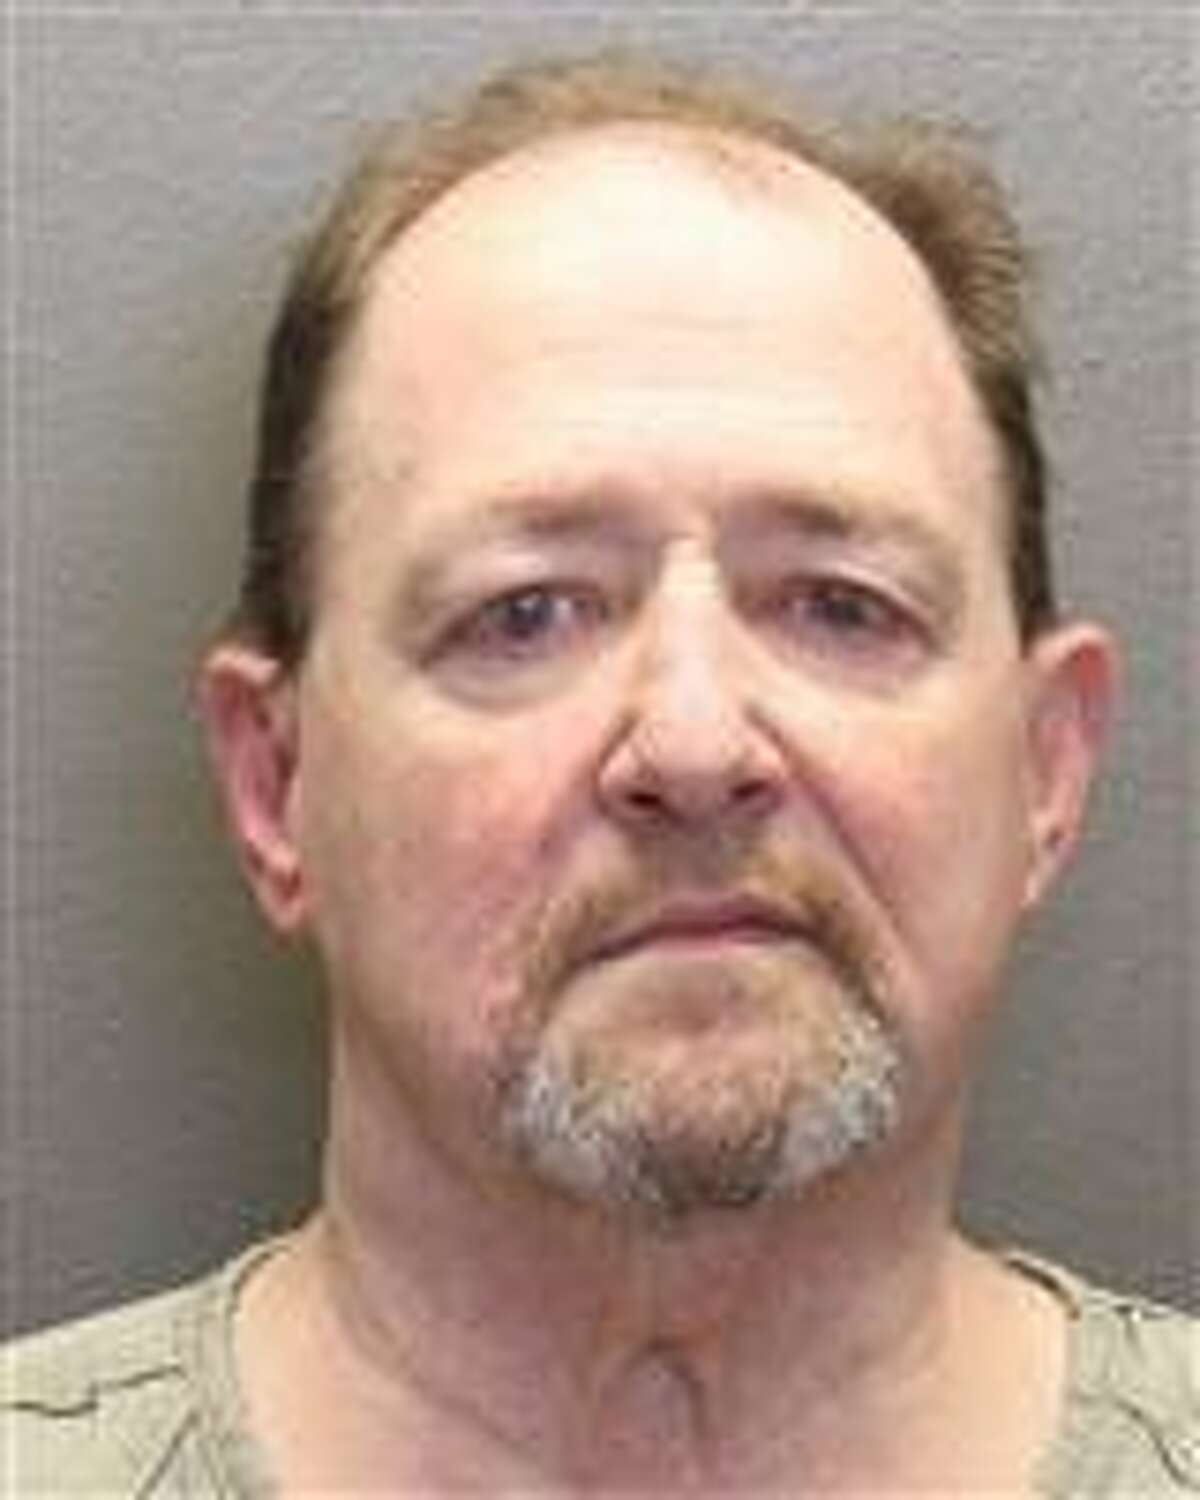 Clayton B. Foreman has been arrested and charged with murder. He is being held in Franklin County, Ohio.